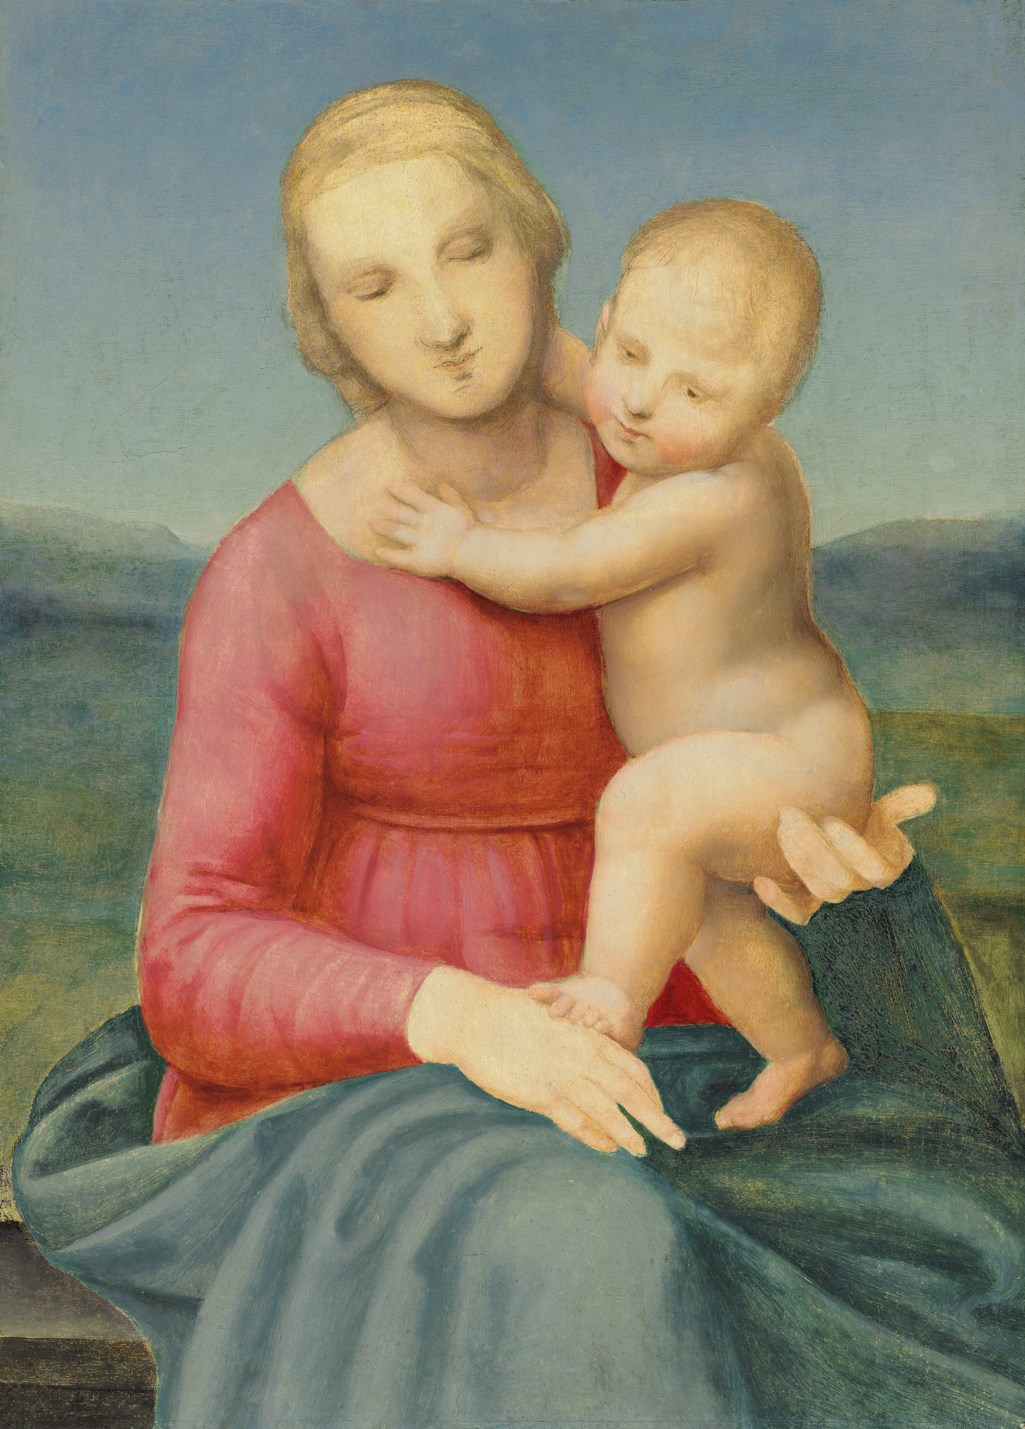 Attributed to Raffaello Sanzio, called Raphael (Urbino 1483-1520 Rome) or a close associate